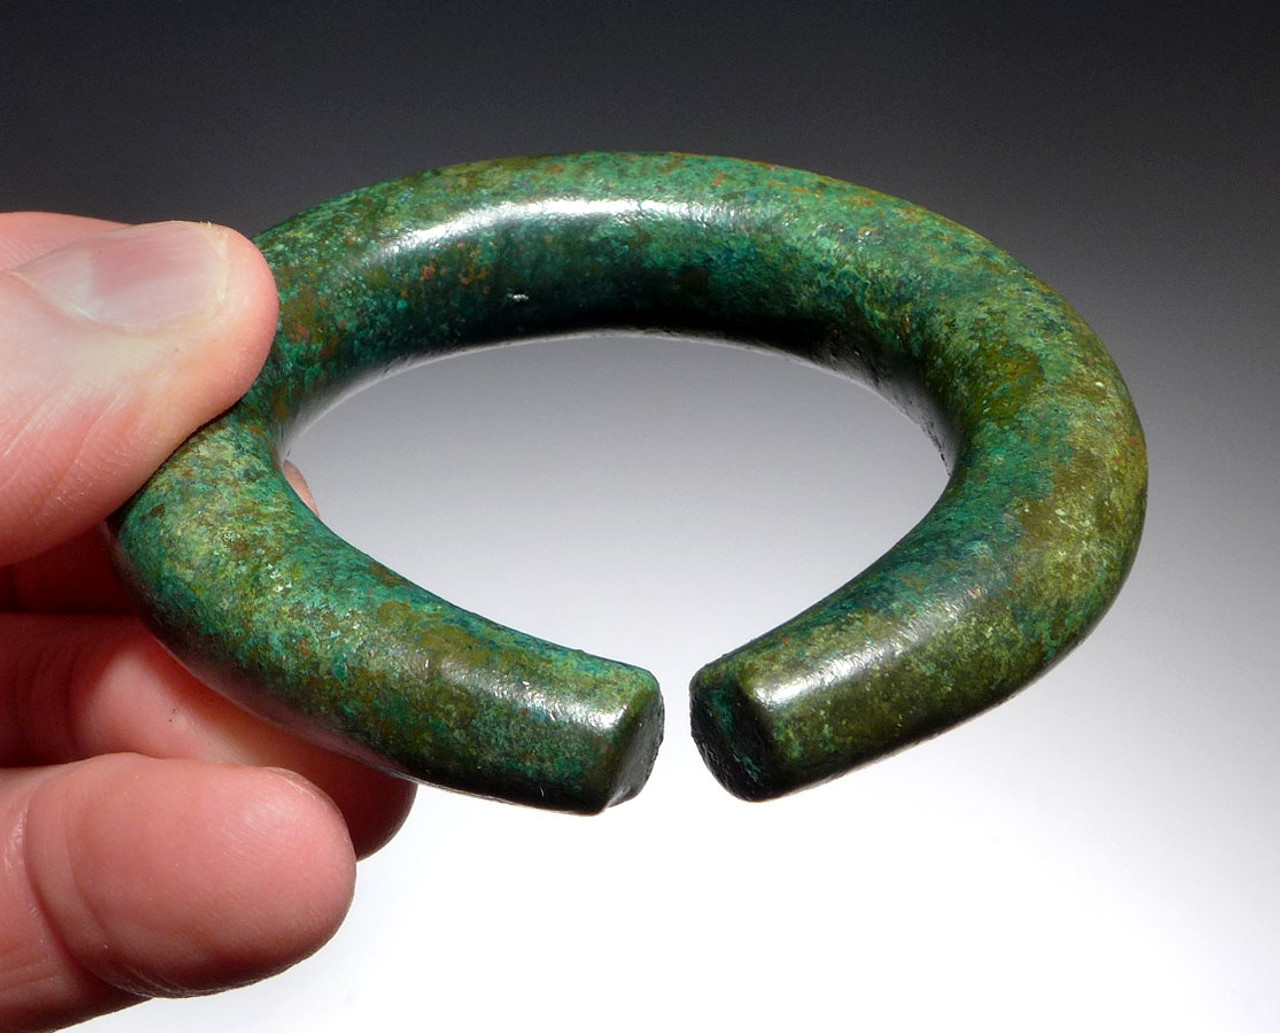 HEAVY SOLID LURISTAN BRONZE ANCIENT NEAR EASTERN BANGLE BRACELET / ANKLET POSSIBLY FOR CHILD *NE200